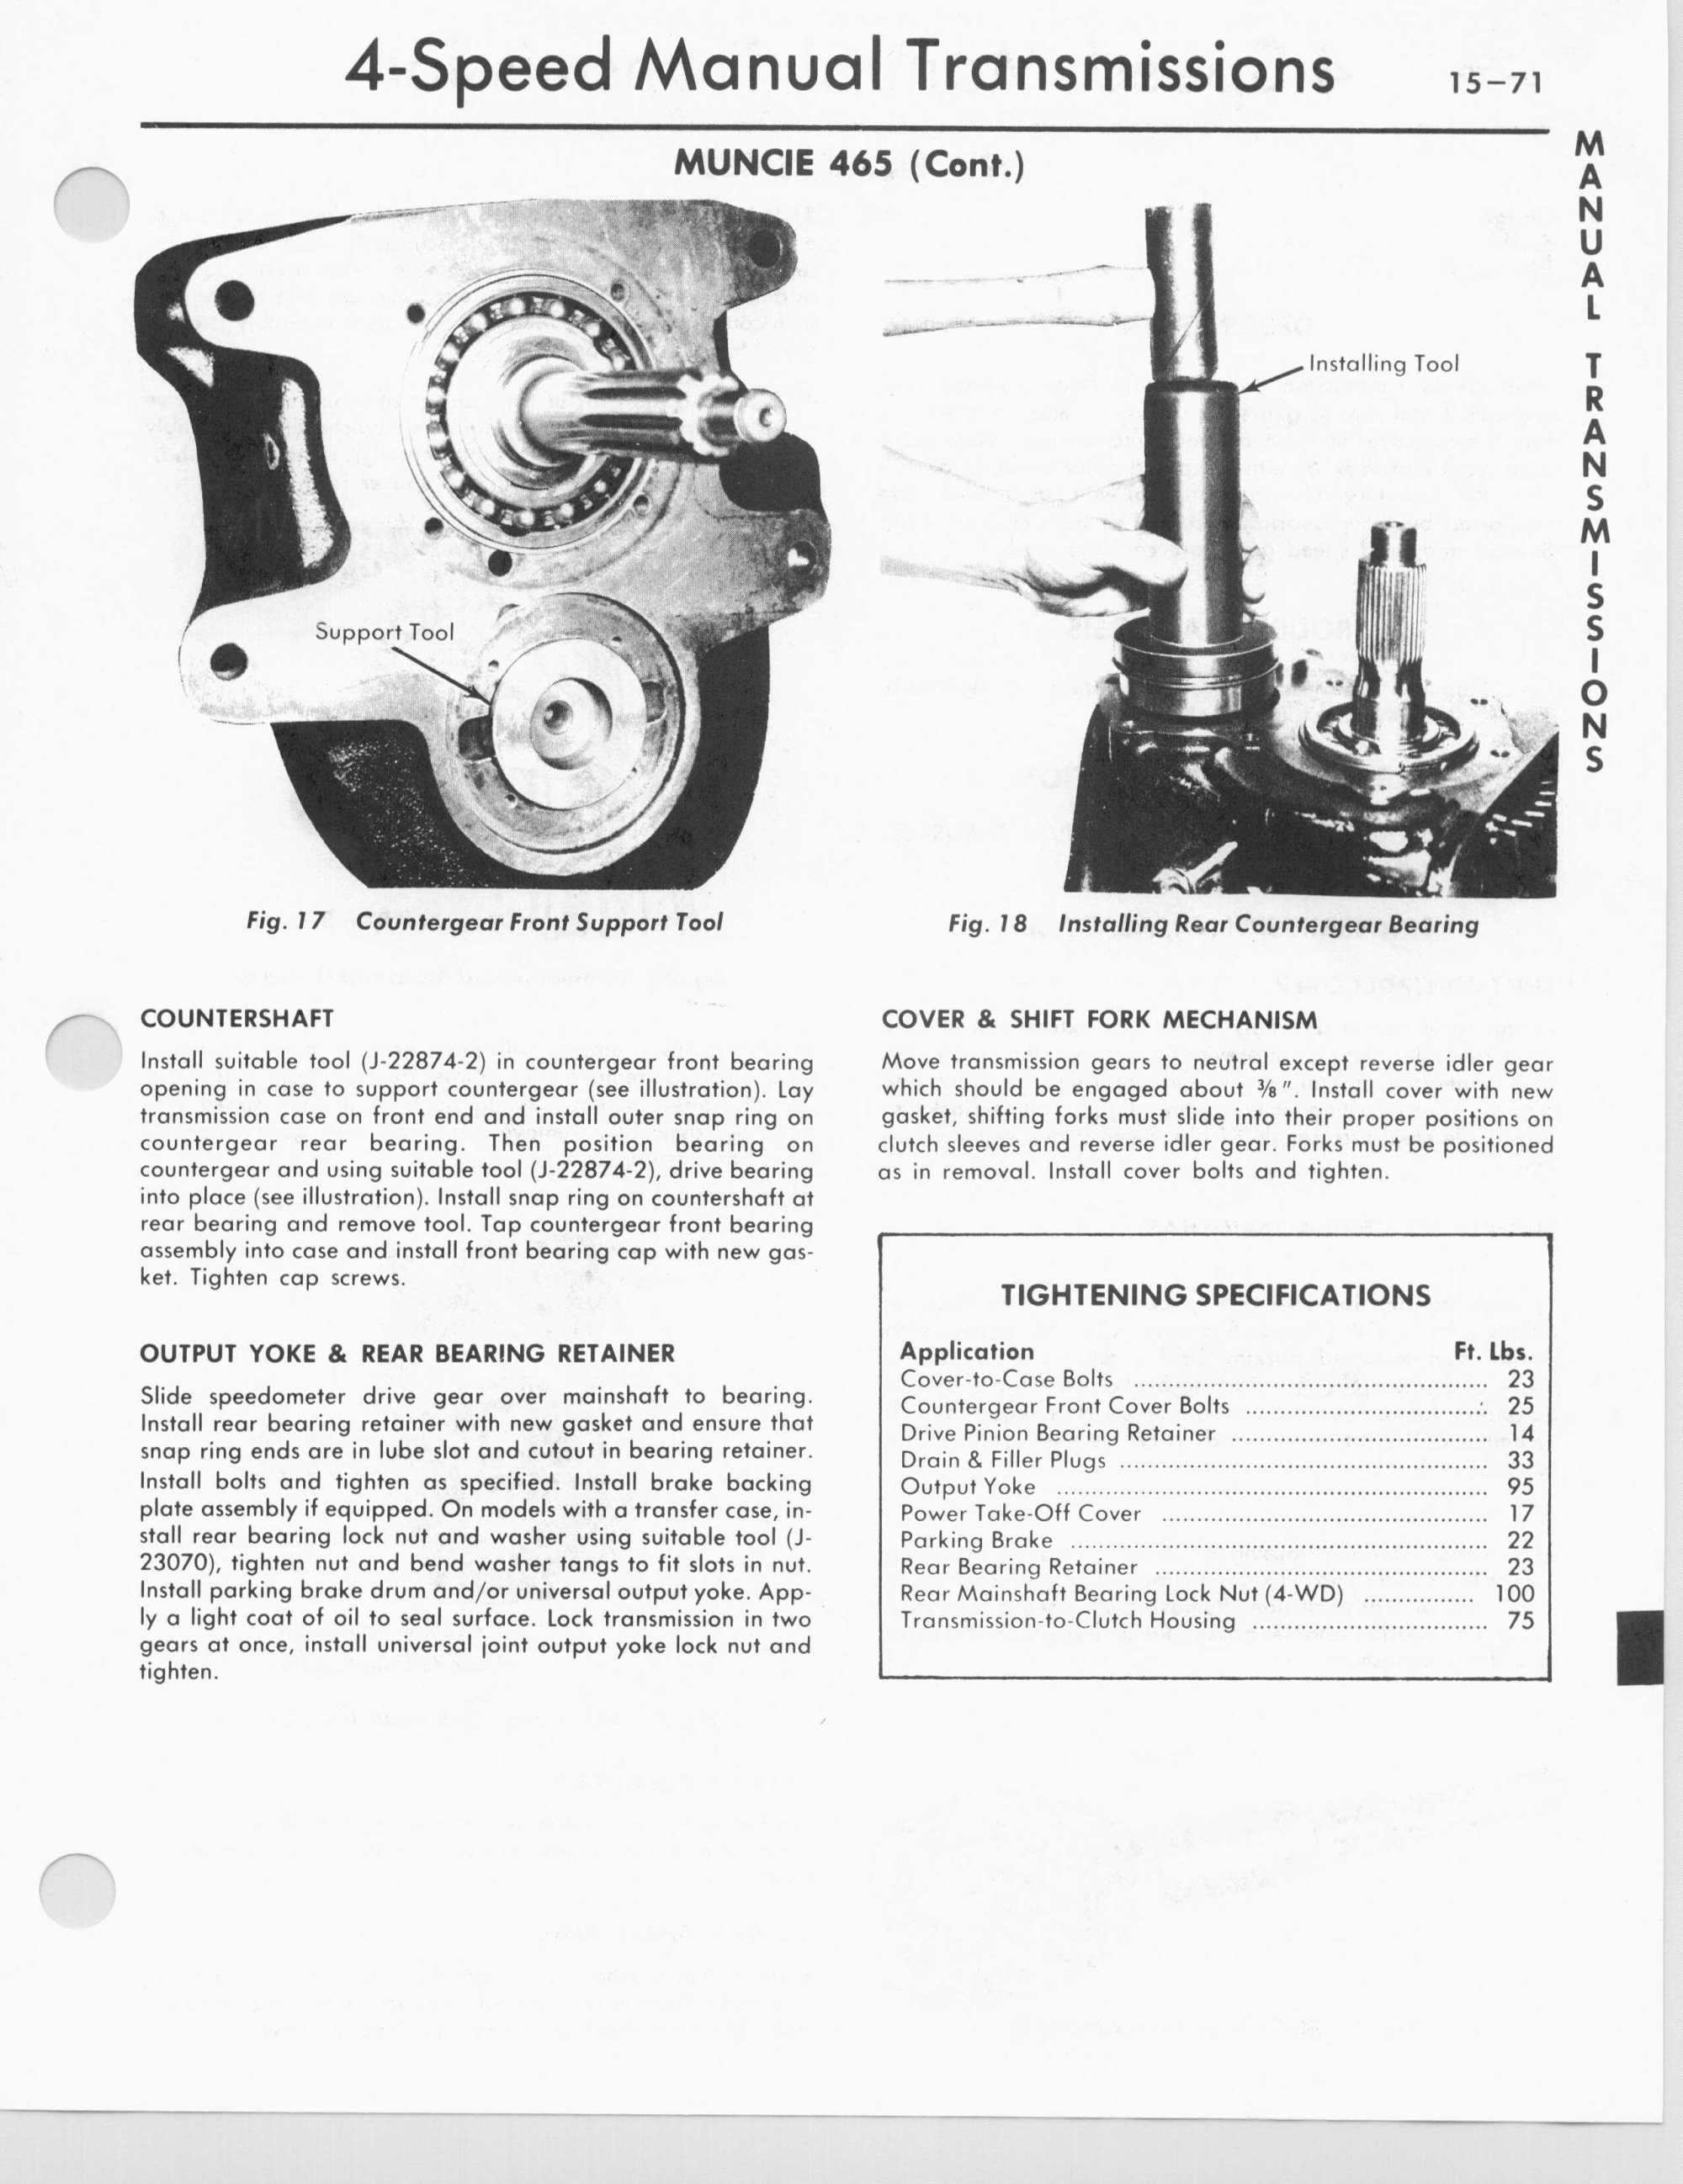 Sm465 Diagram - gm transmission manual identification